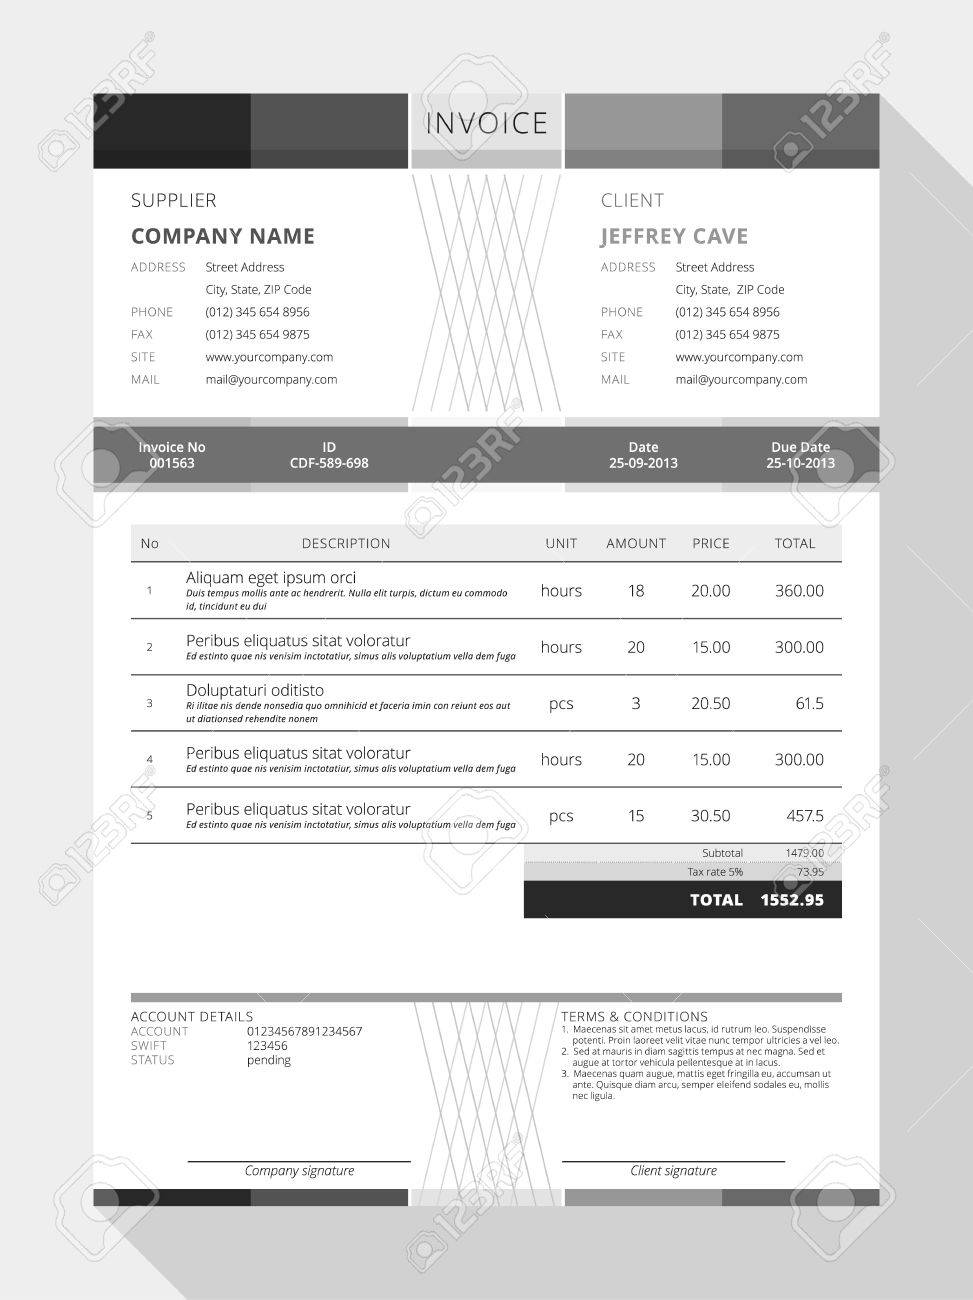 Angkajituus  Unusual Design An Invoice  Professional Graphic Design Invoice  With Engaging Vector Customizable Invoice Form Template Design Vector   Design An Invoice With Cute Cash Receipt Template Free Also Red Lobster Receipt In Addition Enterprise Rent A Car Receipts And Receipt Cash As Well As How To Organize Receipts For Small Business Additionally Make Sales Receipt From Happytomco With Angkajituus  Engaging Design An Invoice  Professional Graphic Design Invoice  With Cute Vector Customizable Invoice Form Template Design Vector   Design An Invoice And Unusual Cash Receipt Template Free Also Red Lobster Receipt In Addition Enterprise Rent A Car Receipts From Happytomco